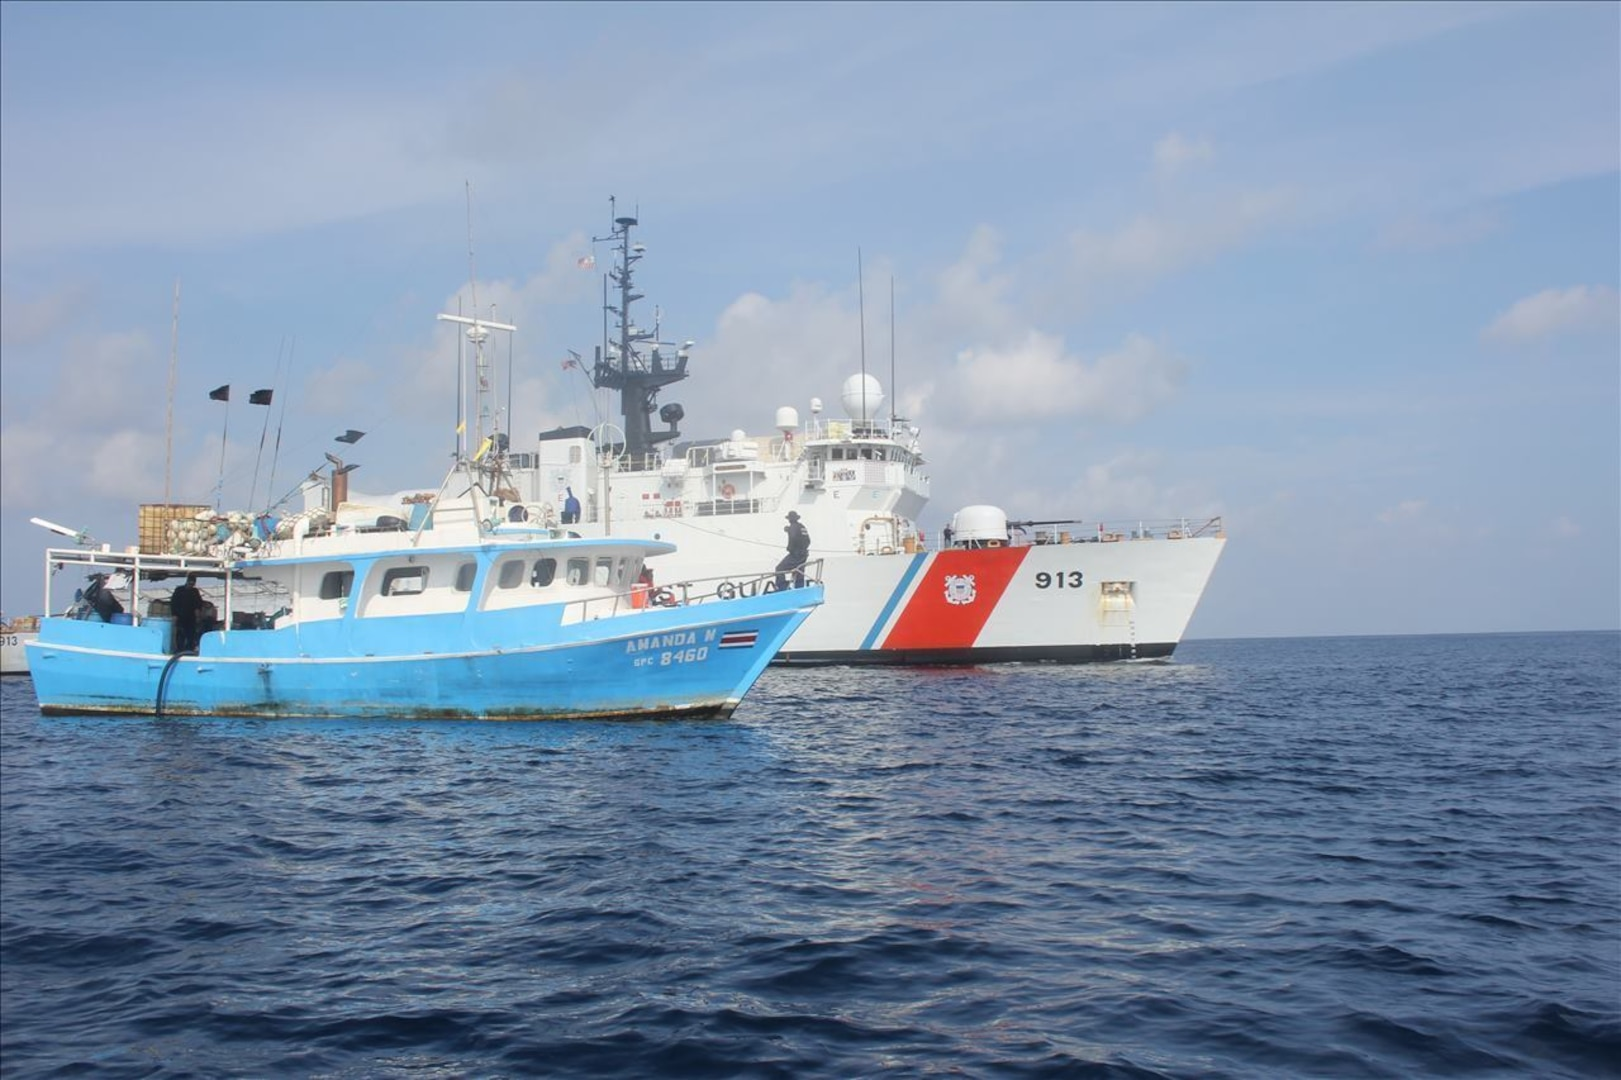 Coast Guard Cutter Mohawk (WMEC-913) members conduct a boarding of the Amanda M fishing vessel in the Eastern Pacific Ocean off the coast of Central America, April 9, 2020. During the boarding, the crew discovered several false compartmen